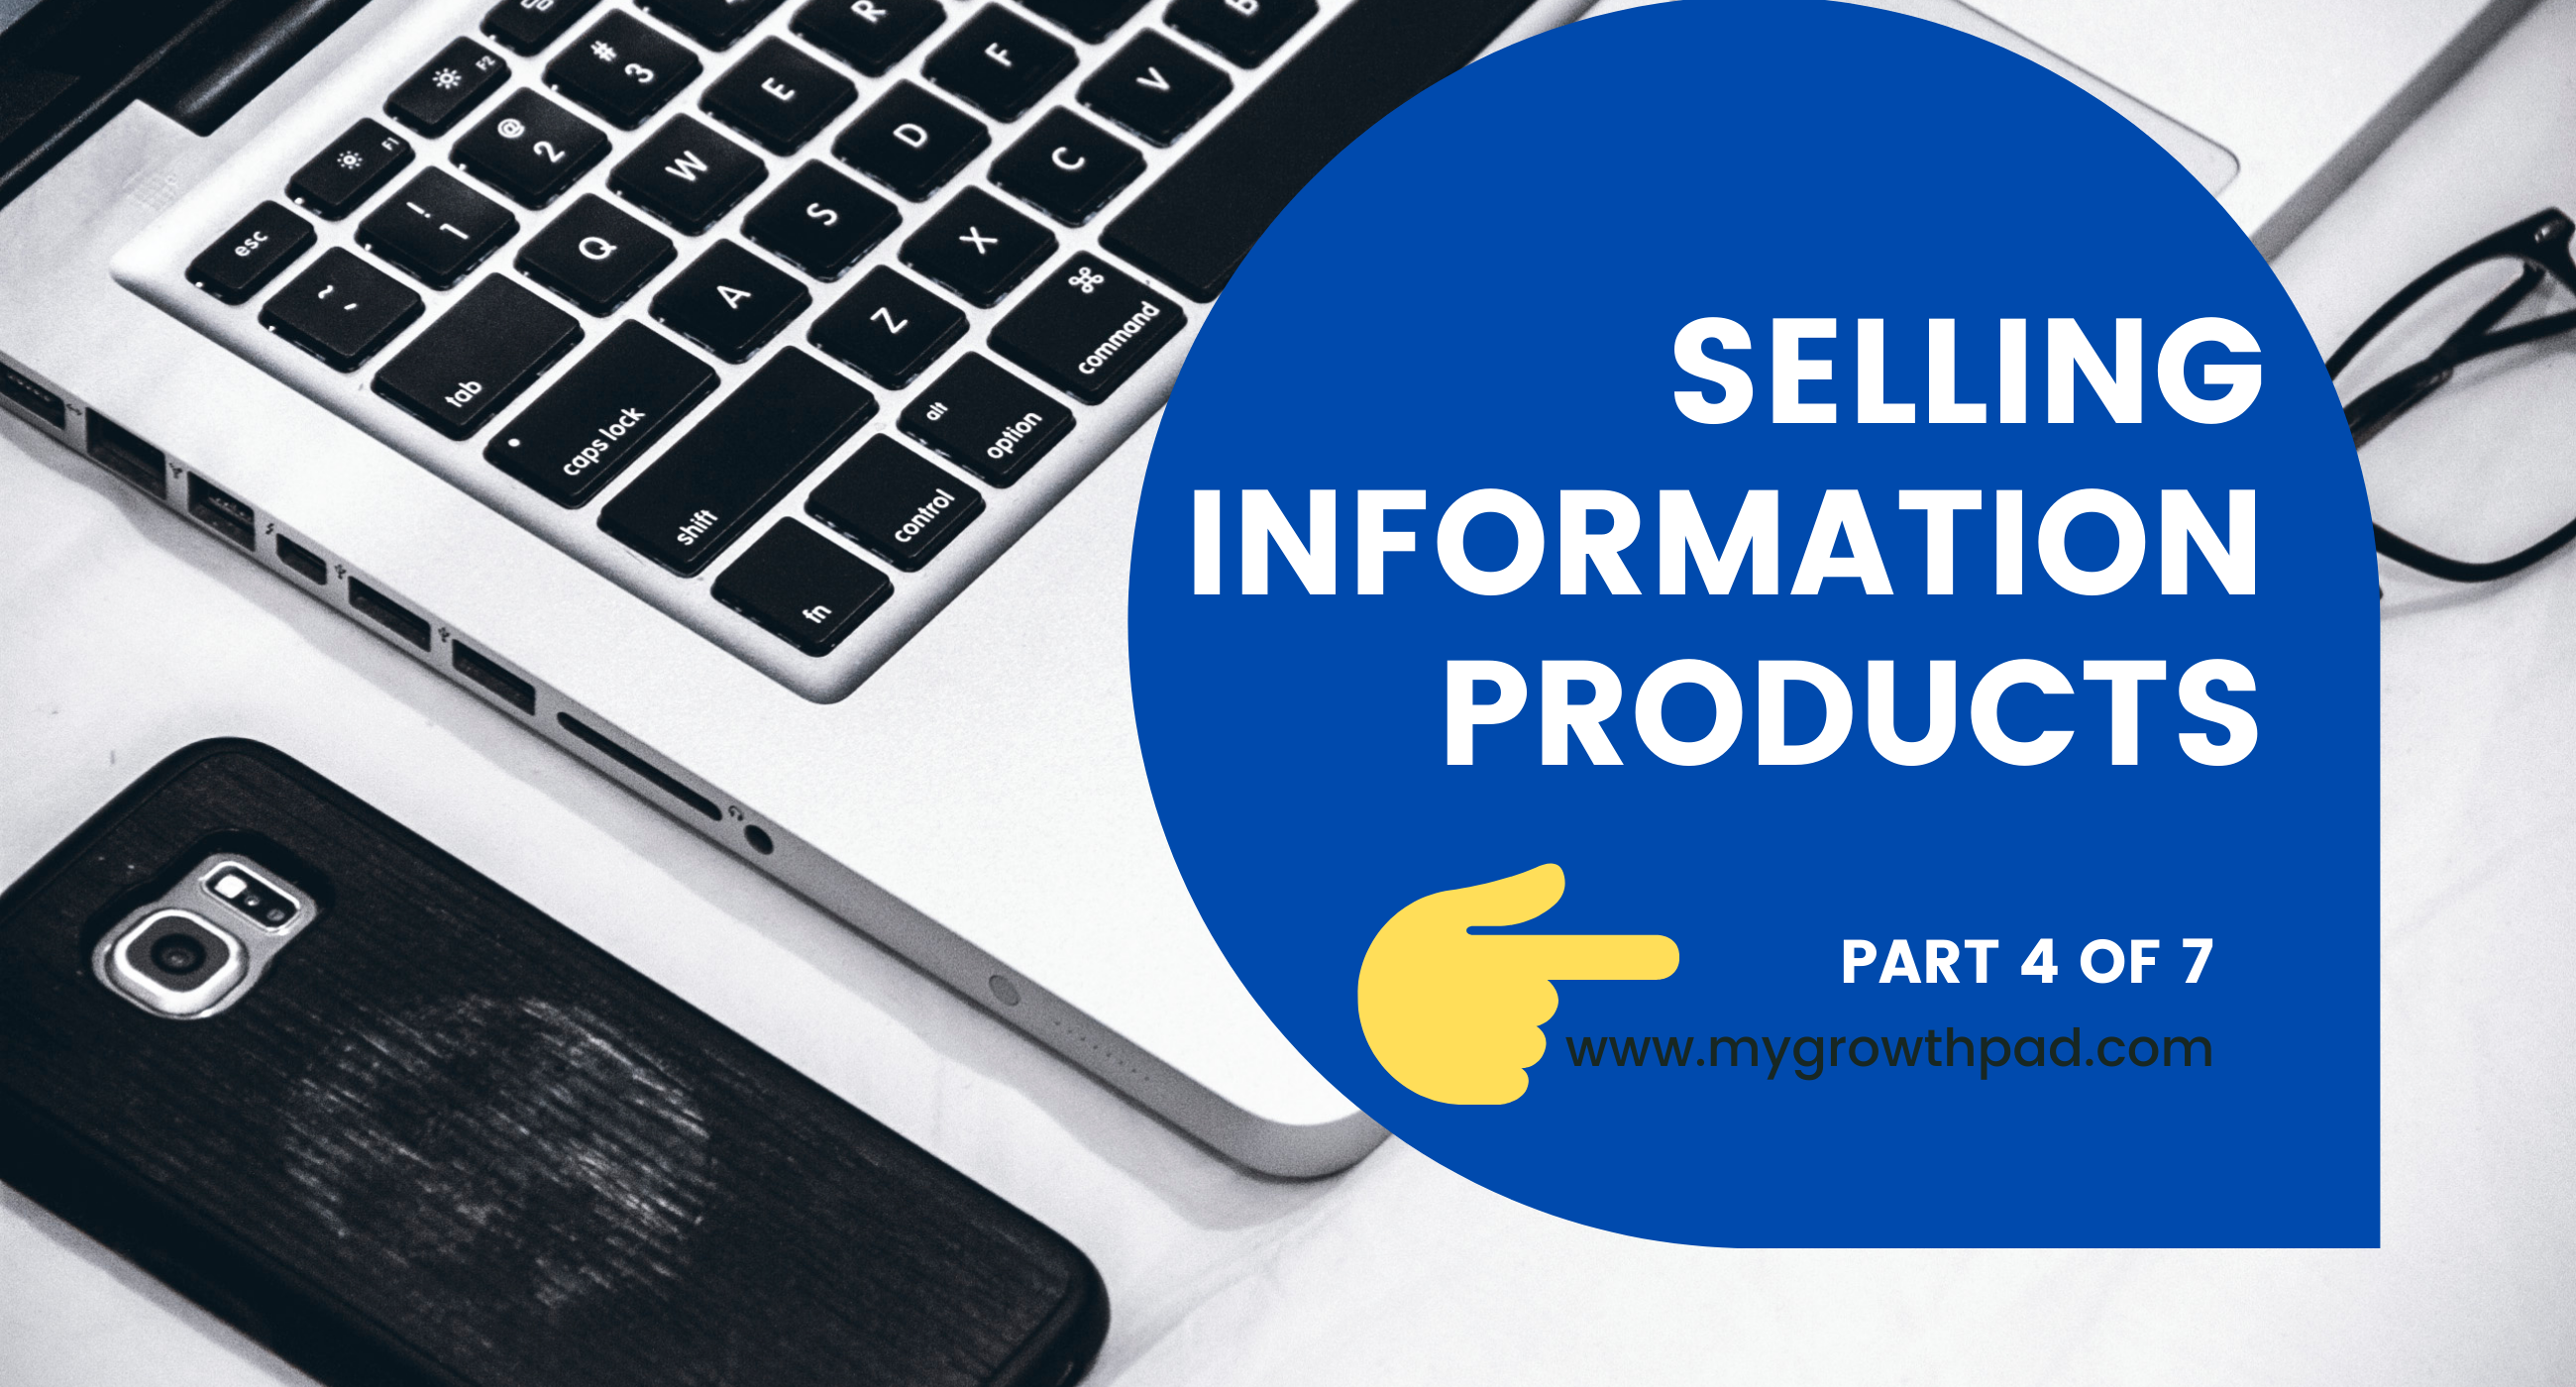 LEAD MAGNETS: How To Make 6-Figures Selling Information Products Online (PART 4)